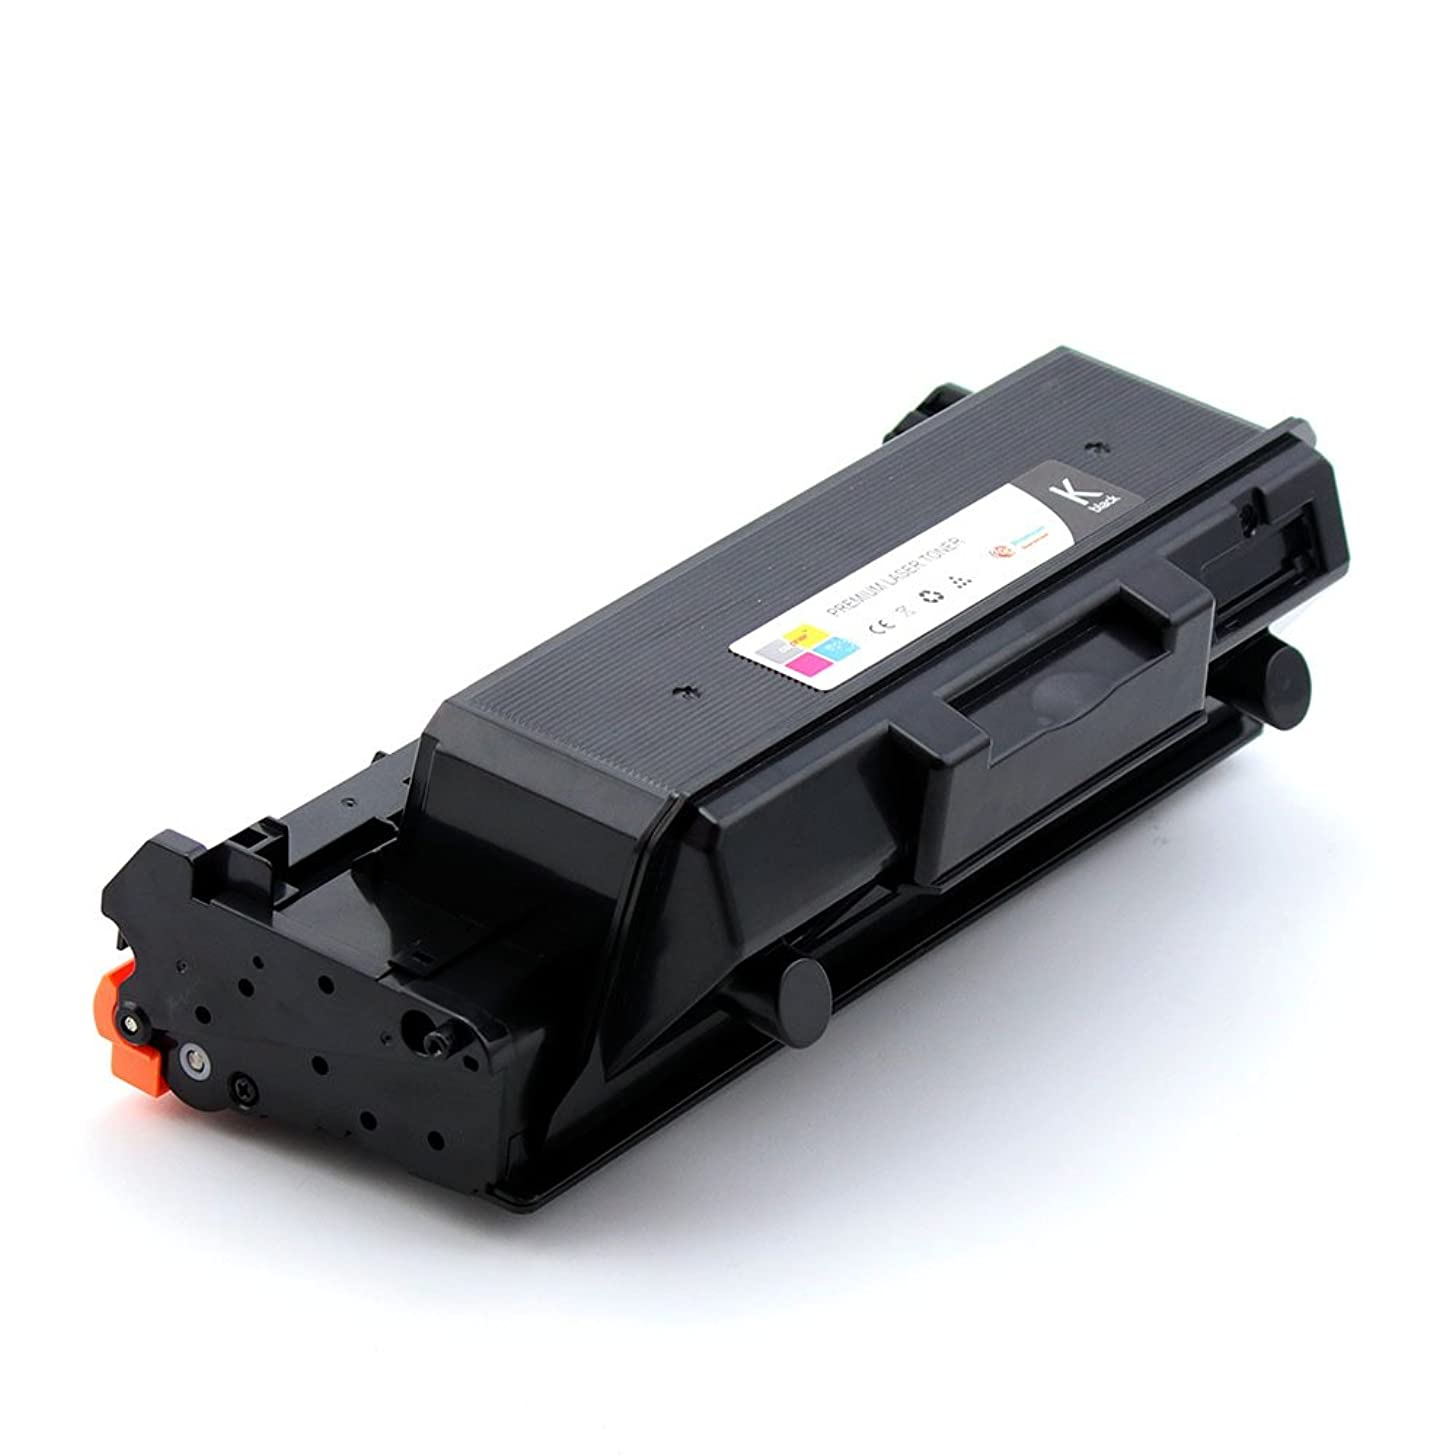 8,500 Pages Coloner(TM) Compatible Black Toner Cartridge for Xerox Phaser 3330, WorkCentre 3335/3345 106R03622